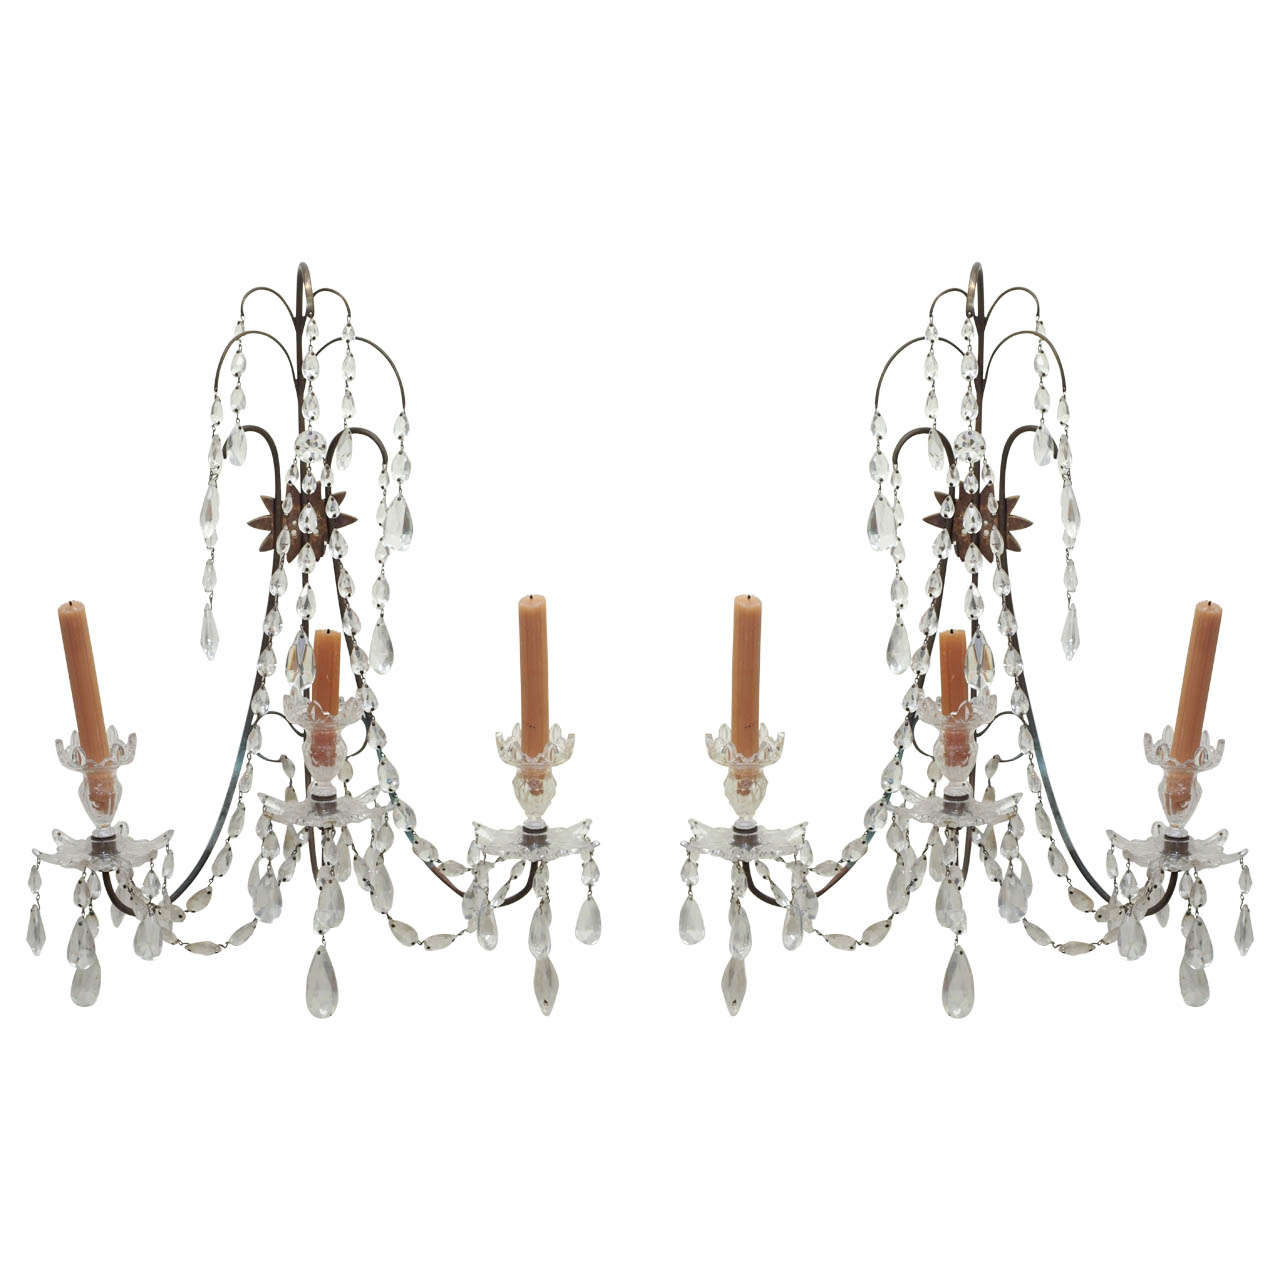 Early 20th c Pair of Crystal Sconces